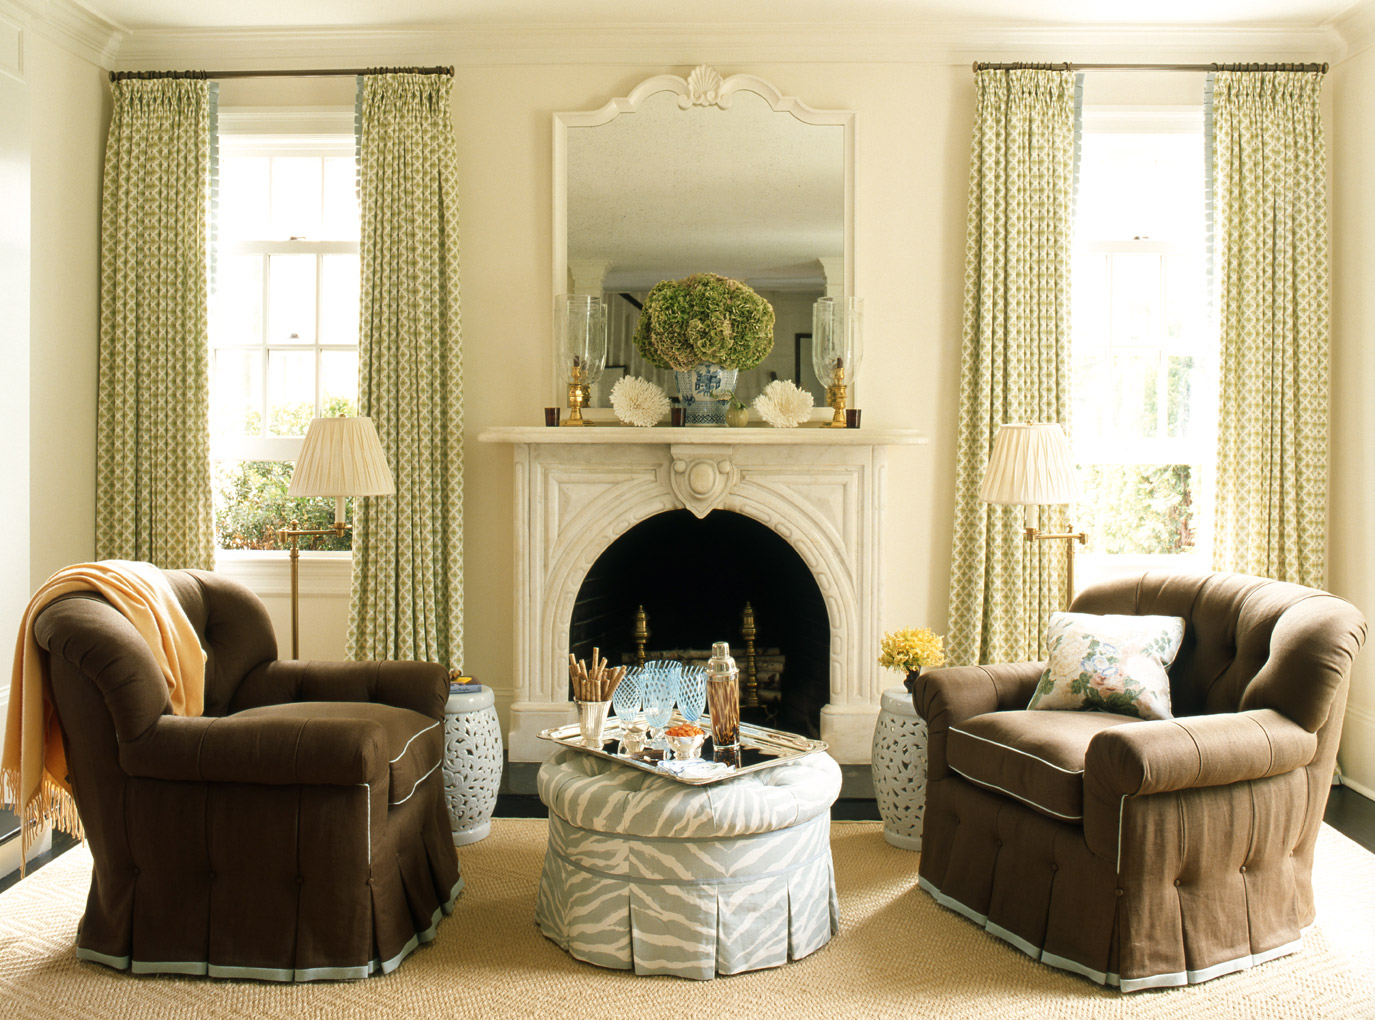 How To Decorate Series Finding Your Decorating Style Home